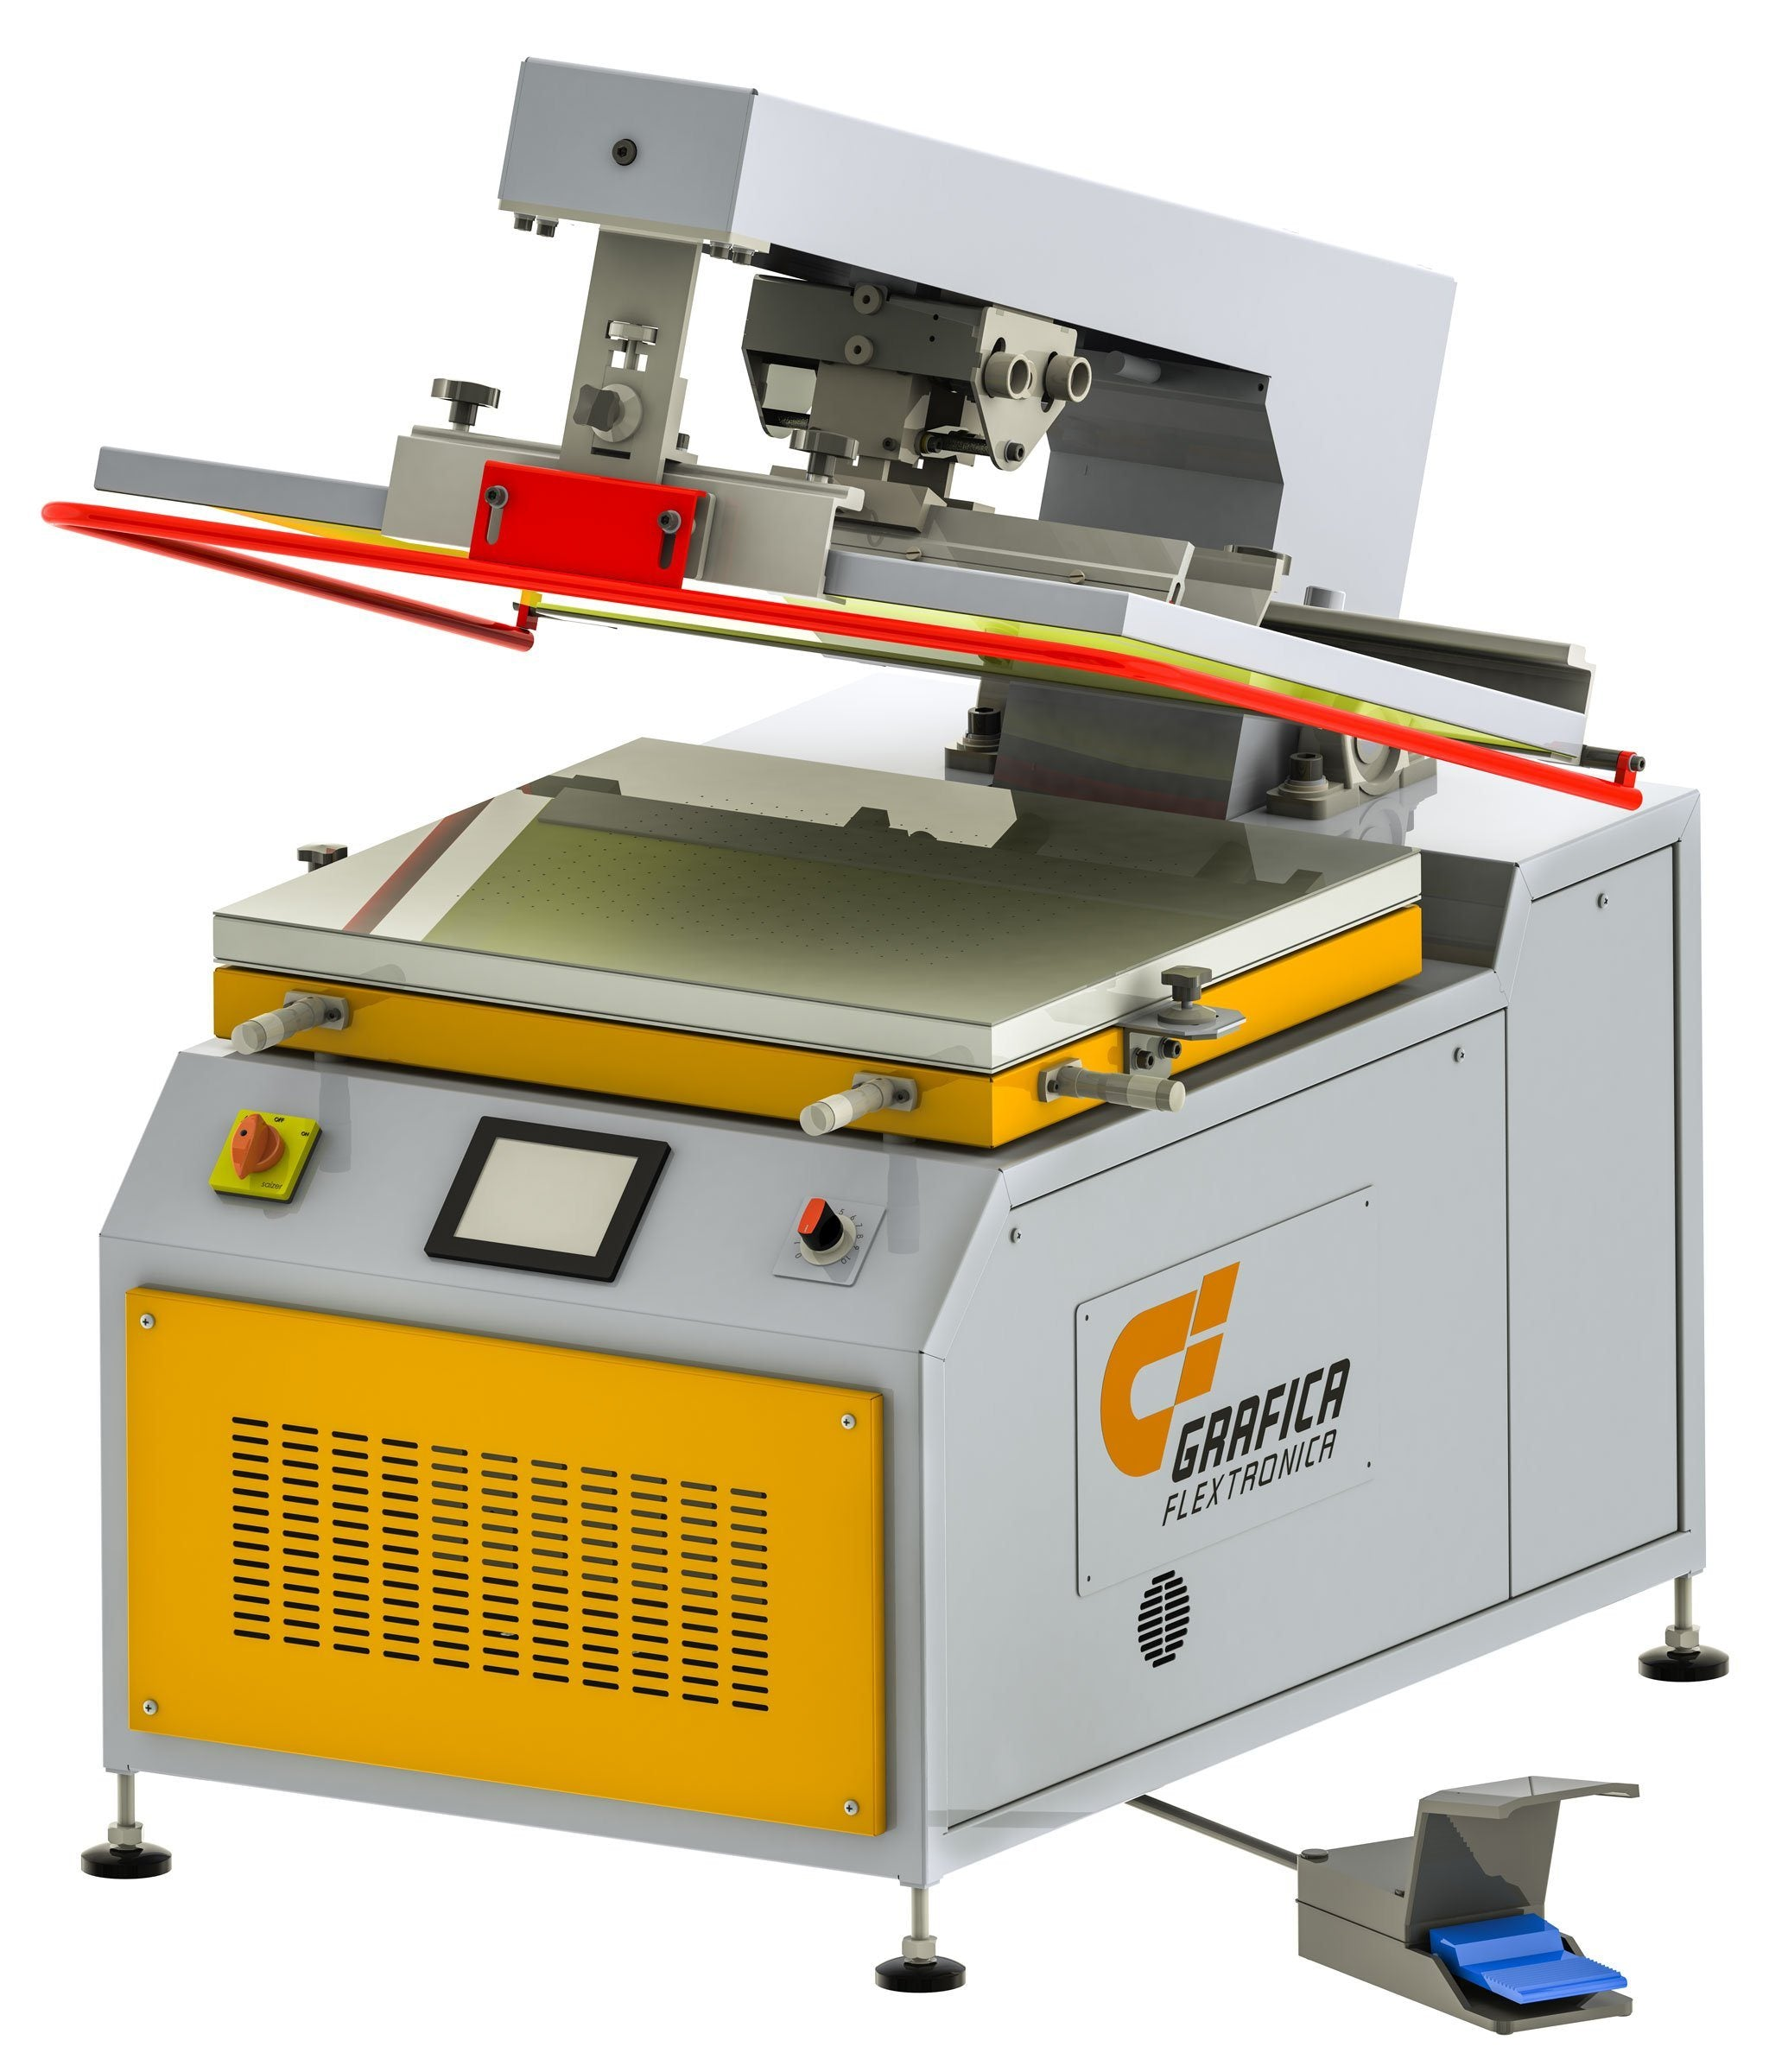 Screen Printing Machine Nano-Print™ 1015 - With Touch Screen Controls